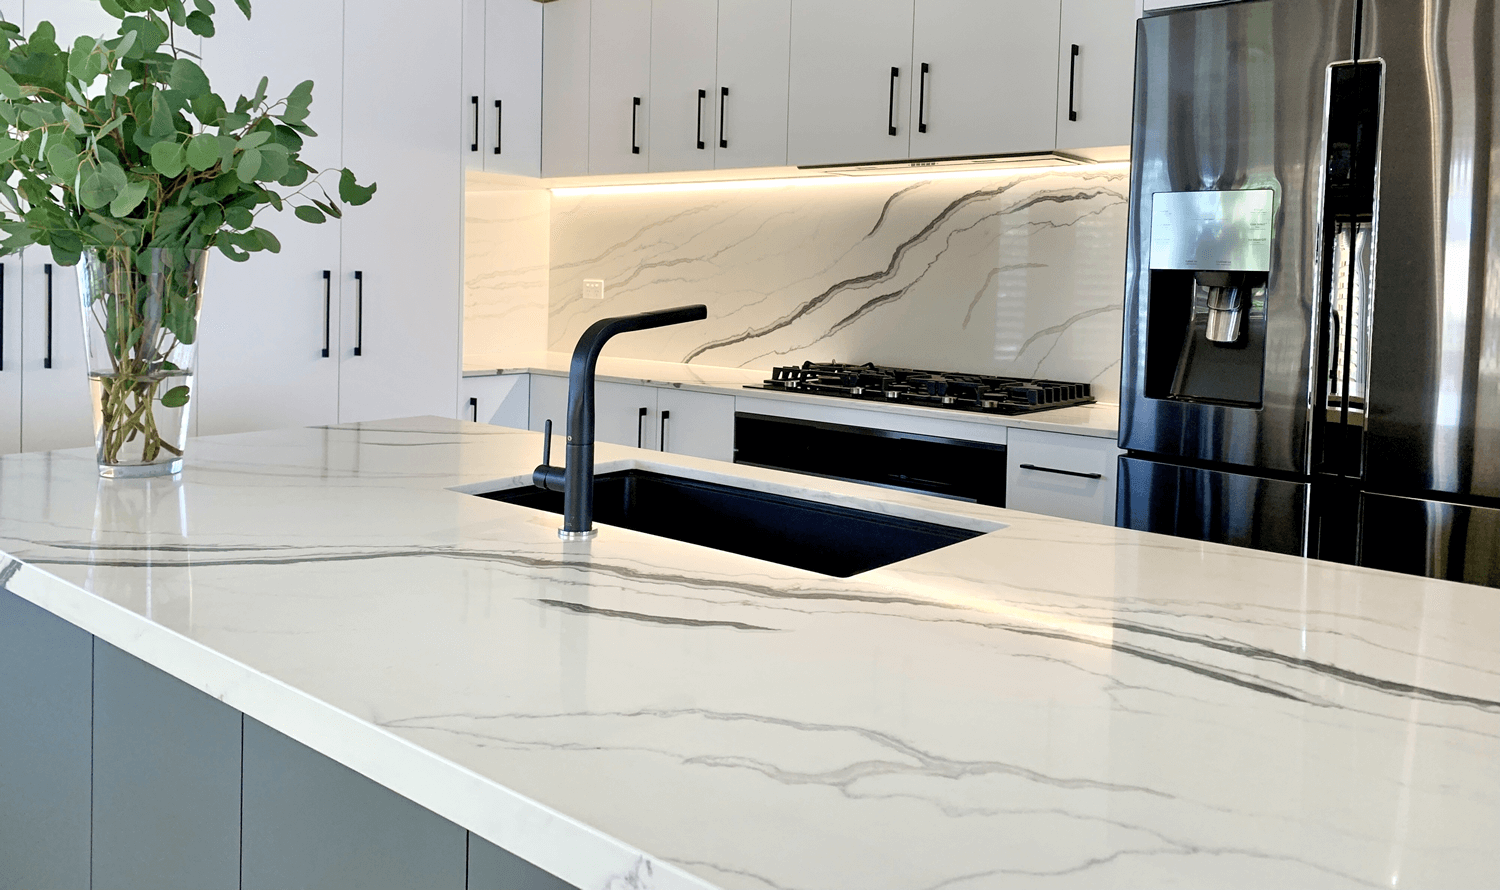 Bathroon and Kitchens Renovations Sydney